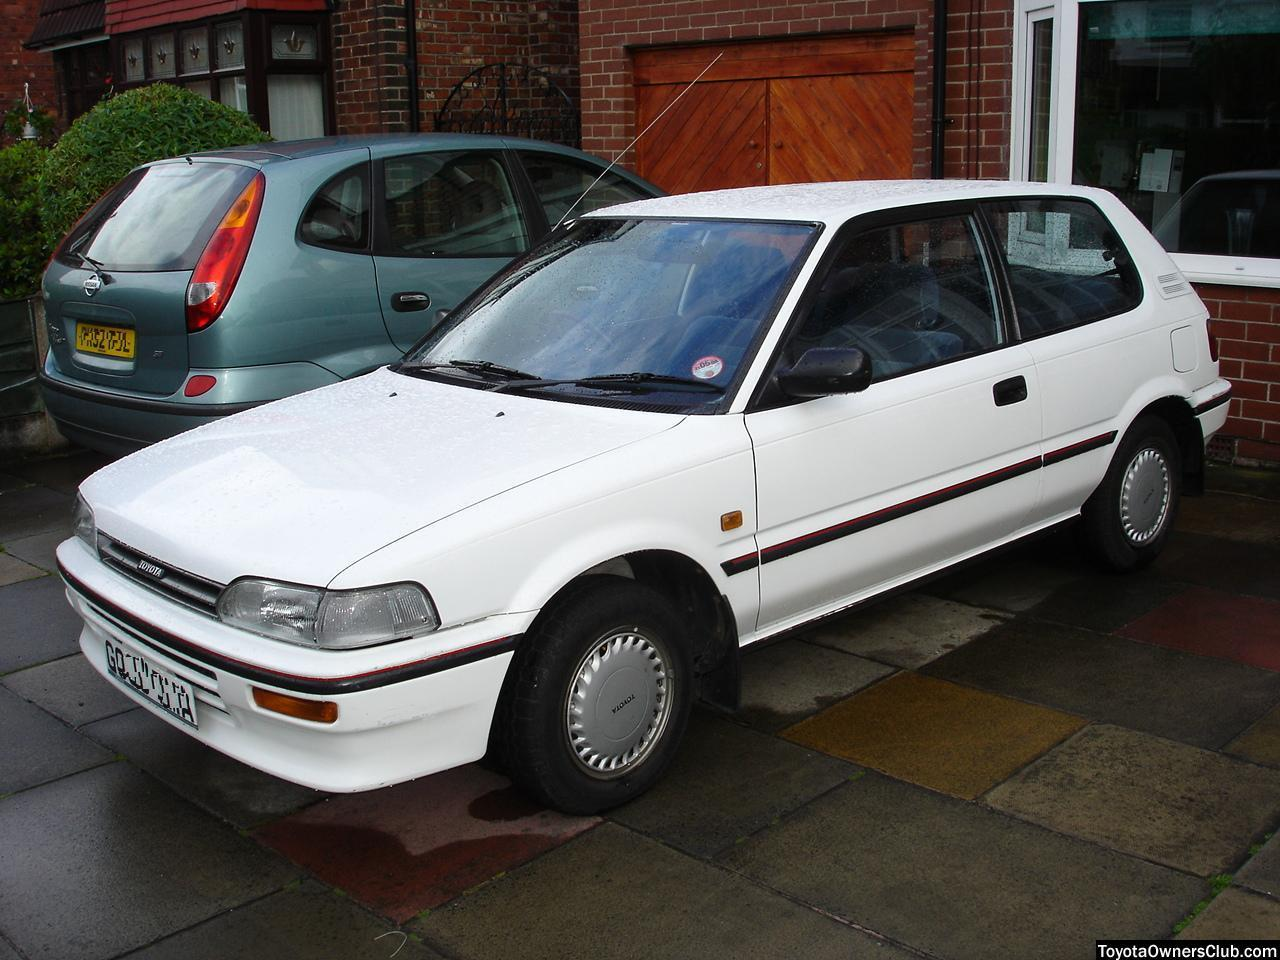 At 15000 miles it has to be one of the lowest 1990 models ar